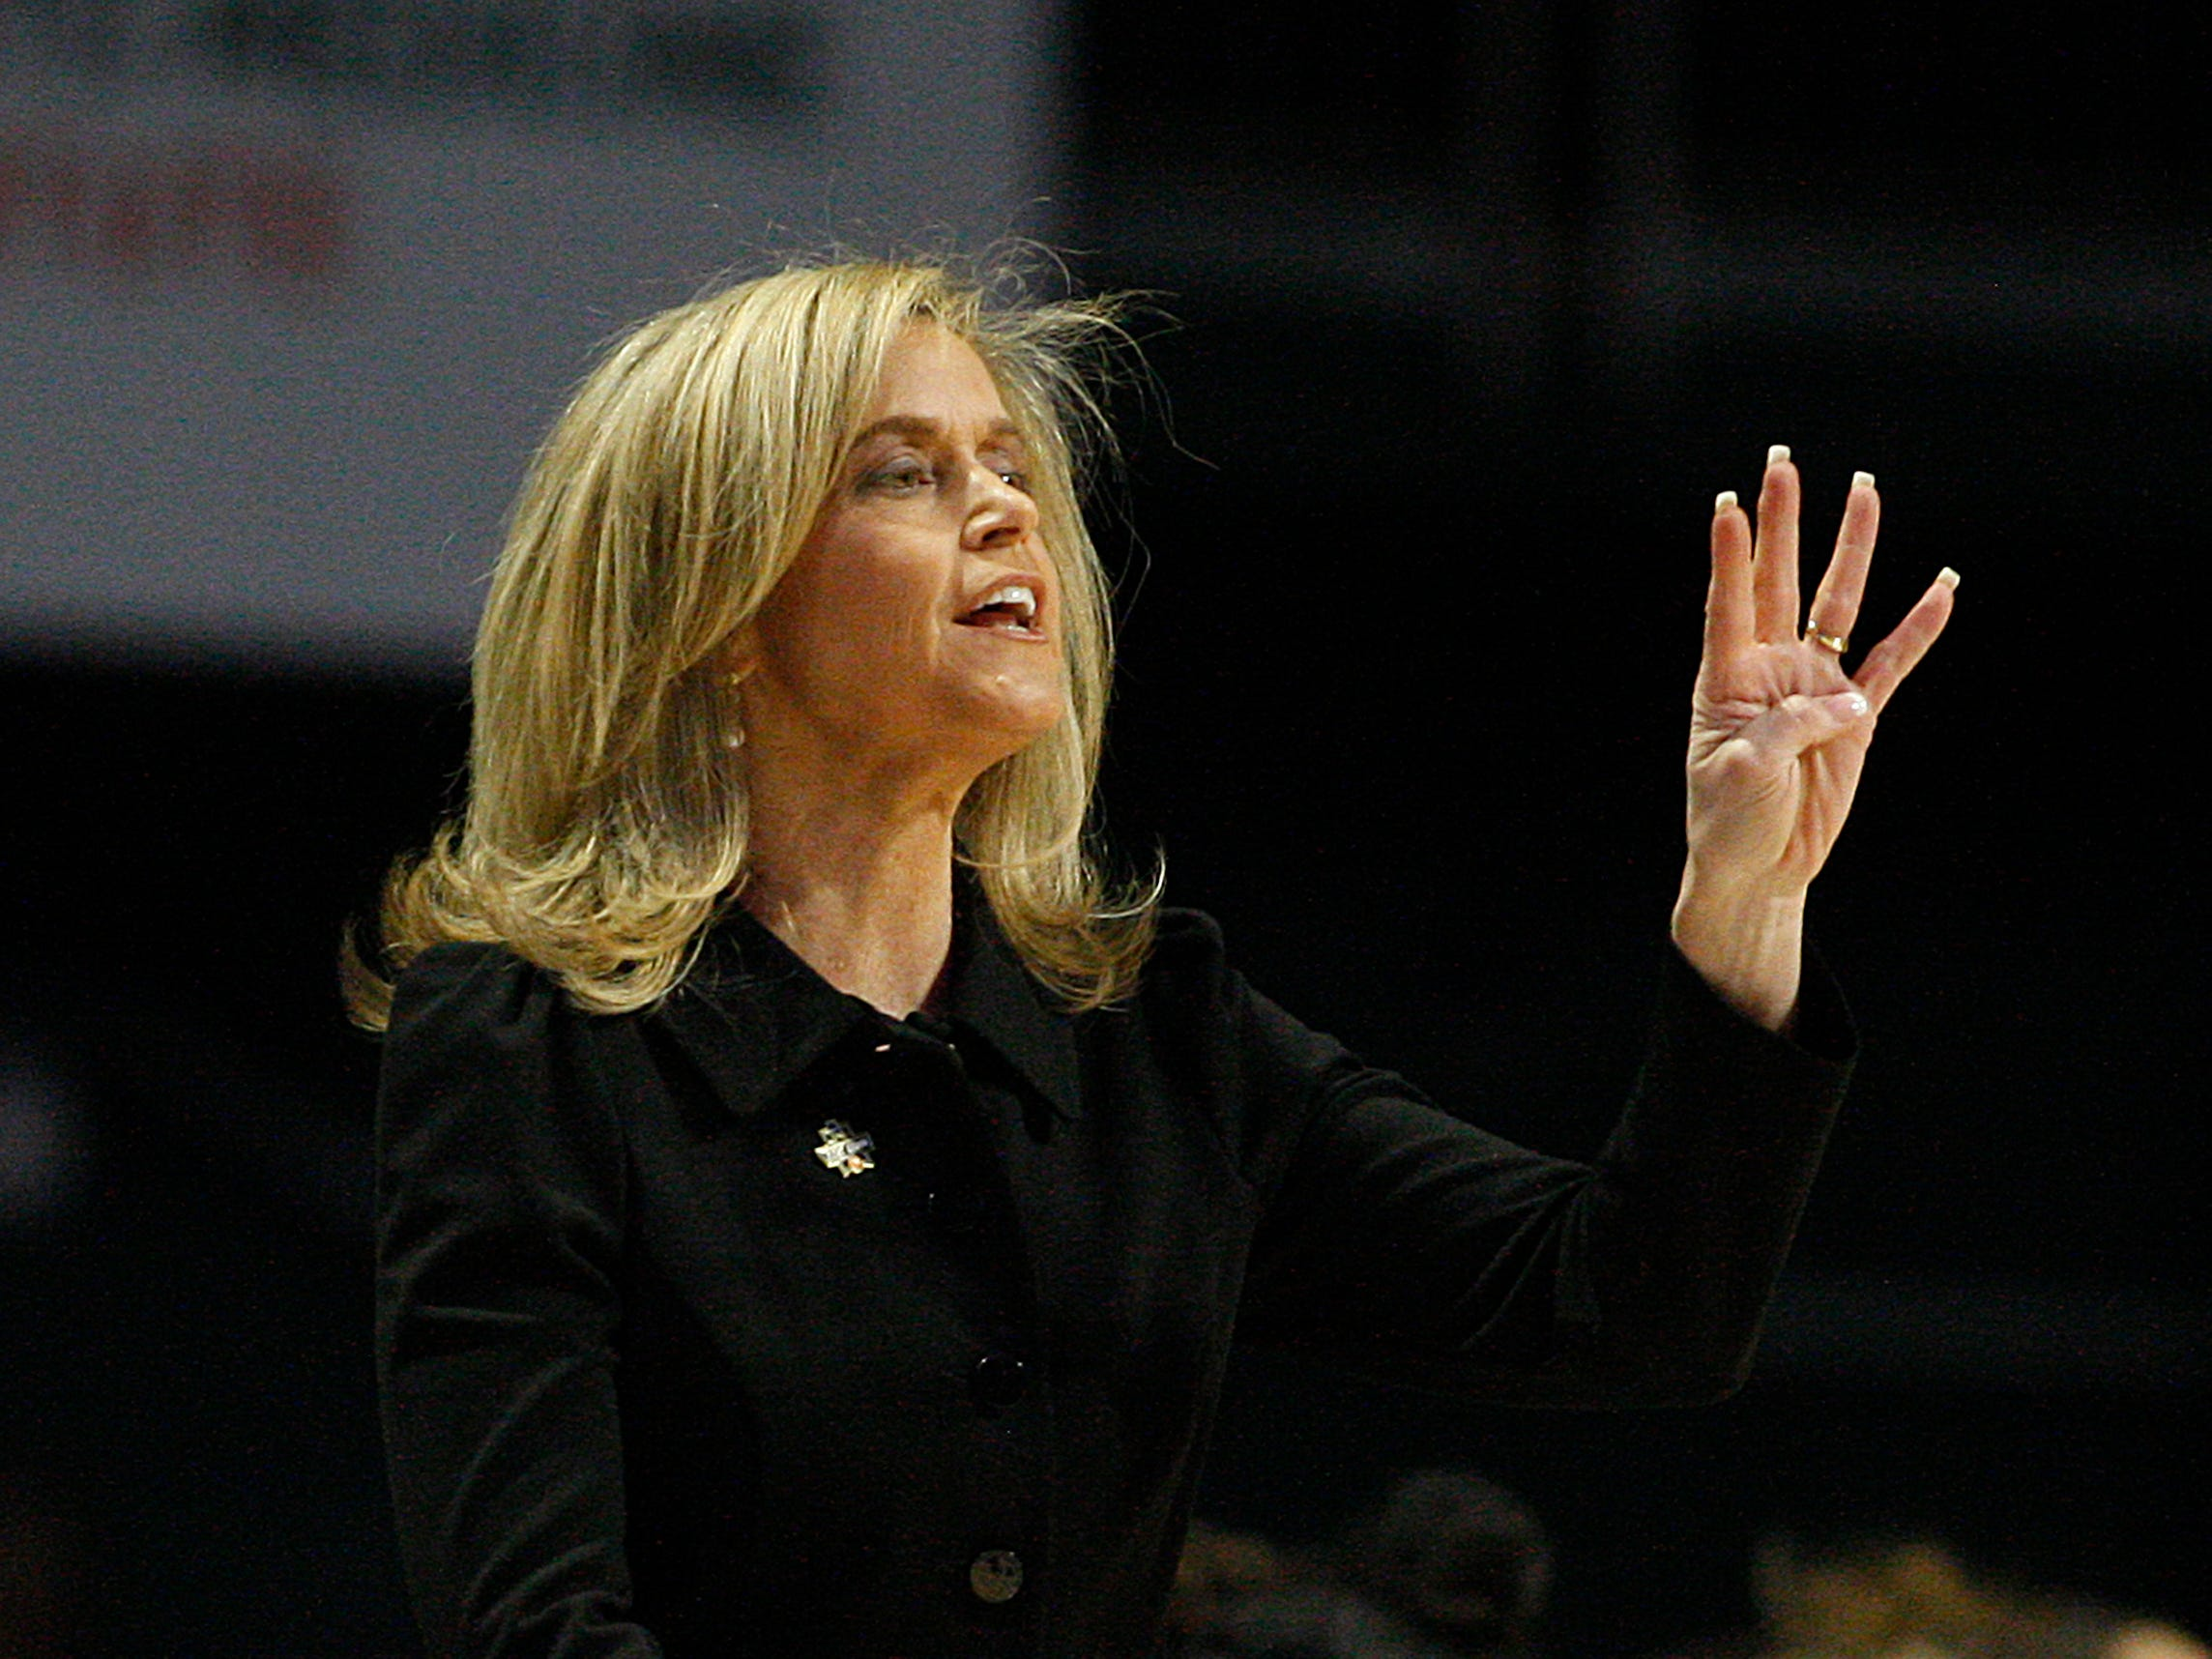 Arizona State head coach Charli Turner Thorne gestures from the sidelines during a first round women's college basketball game against UCF, in the NCAA Tournament in Friday, March 22, 2019, in Coral Gables, Fla. (AP Photo/Luis M. Alvarez)